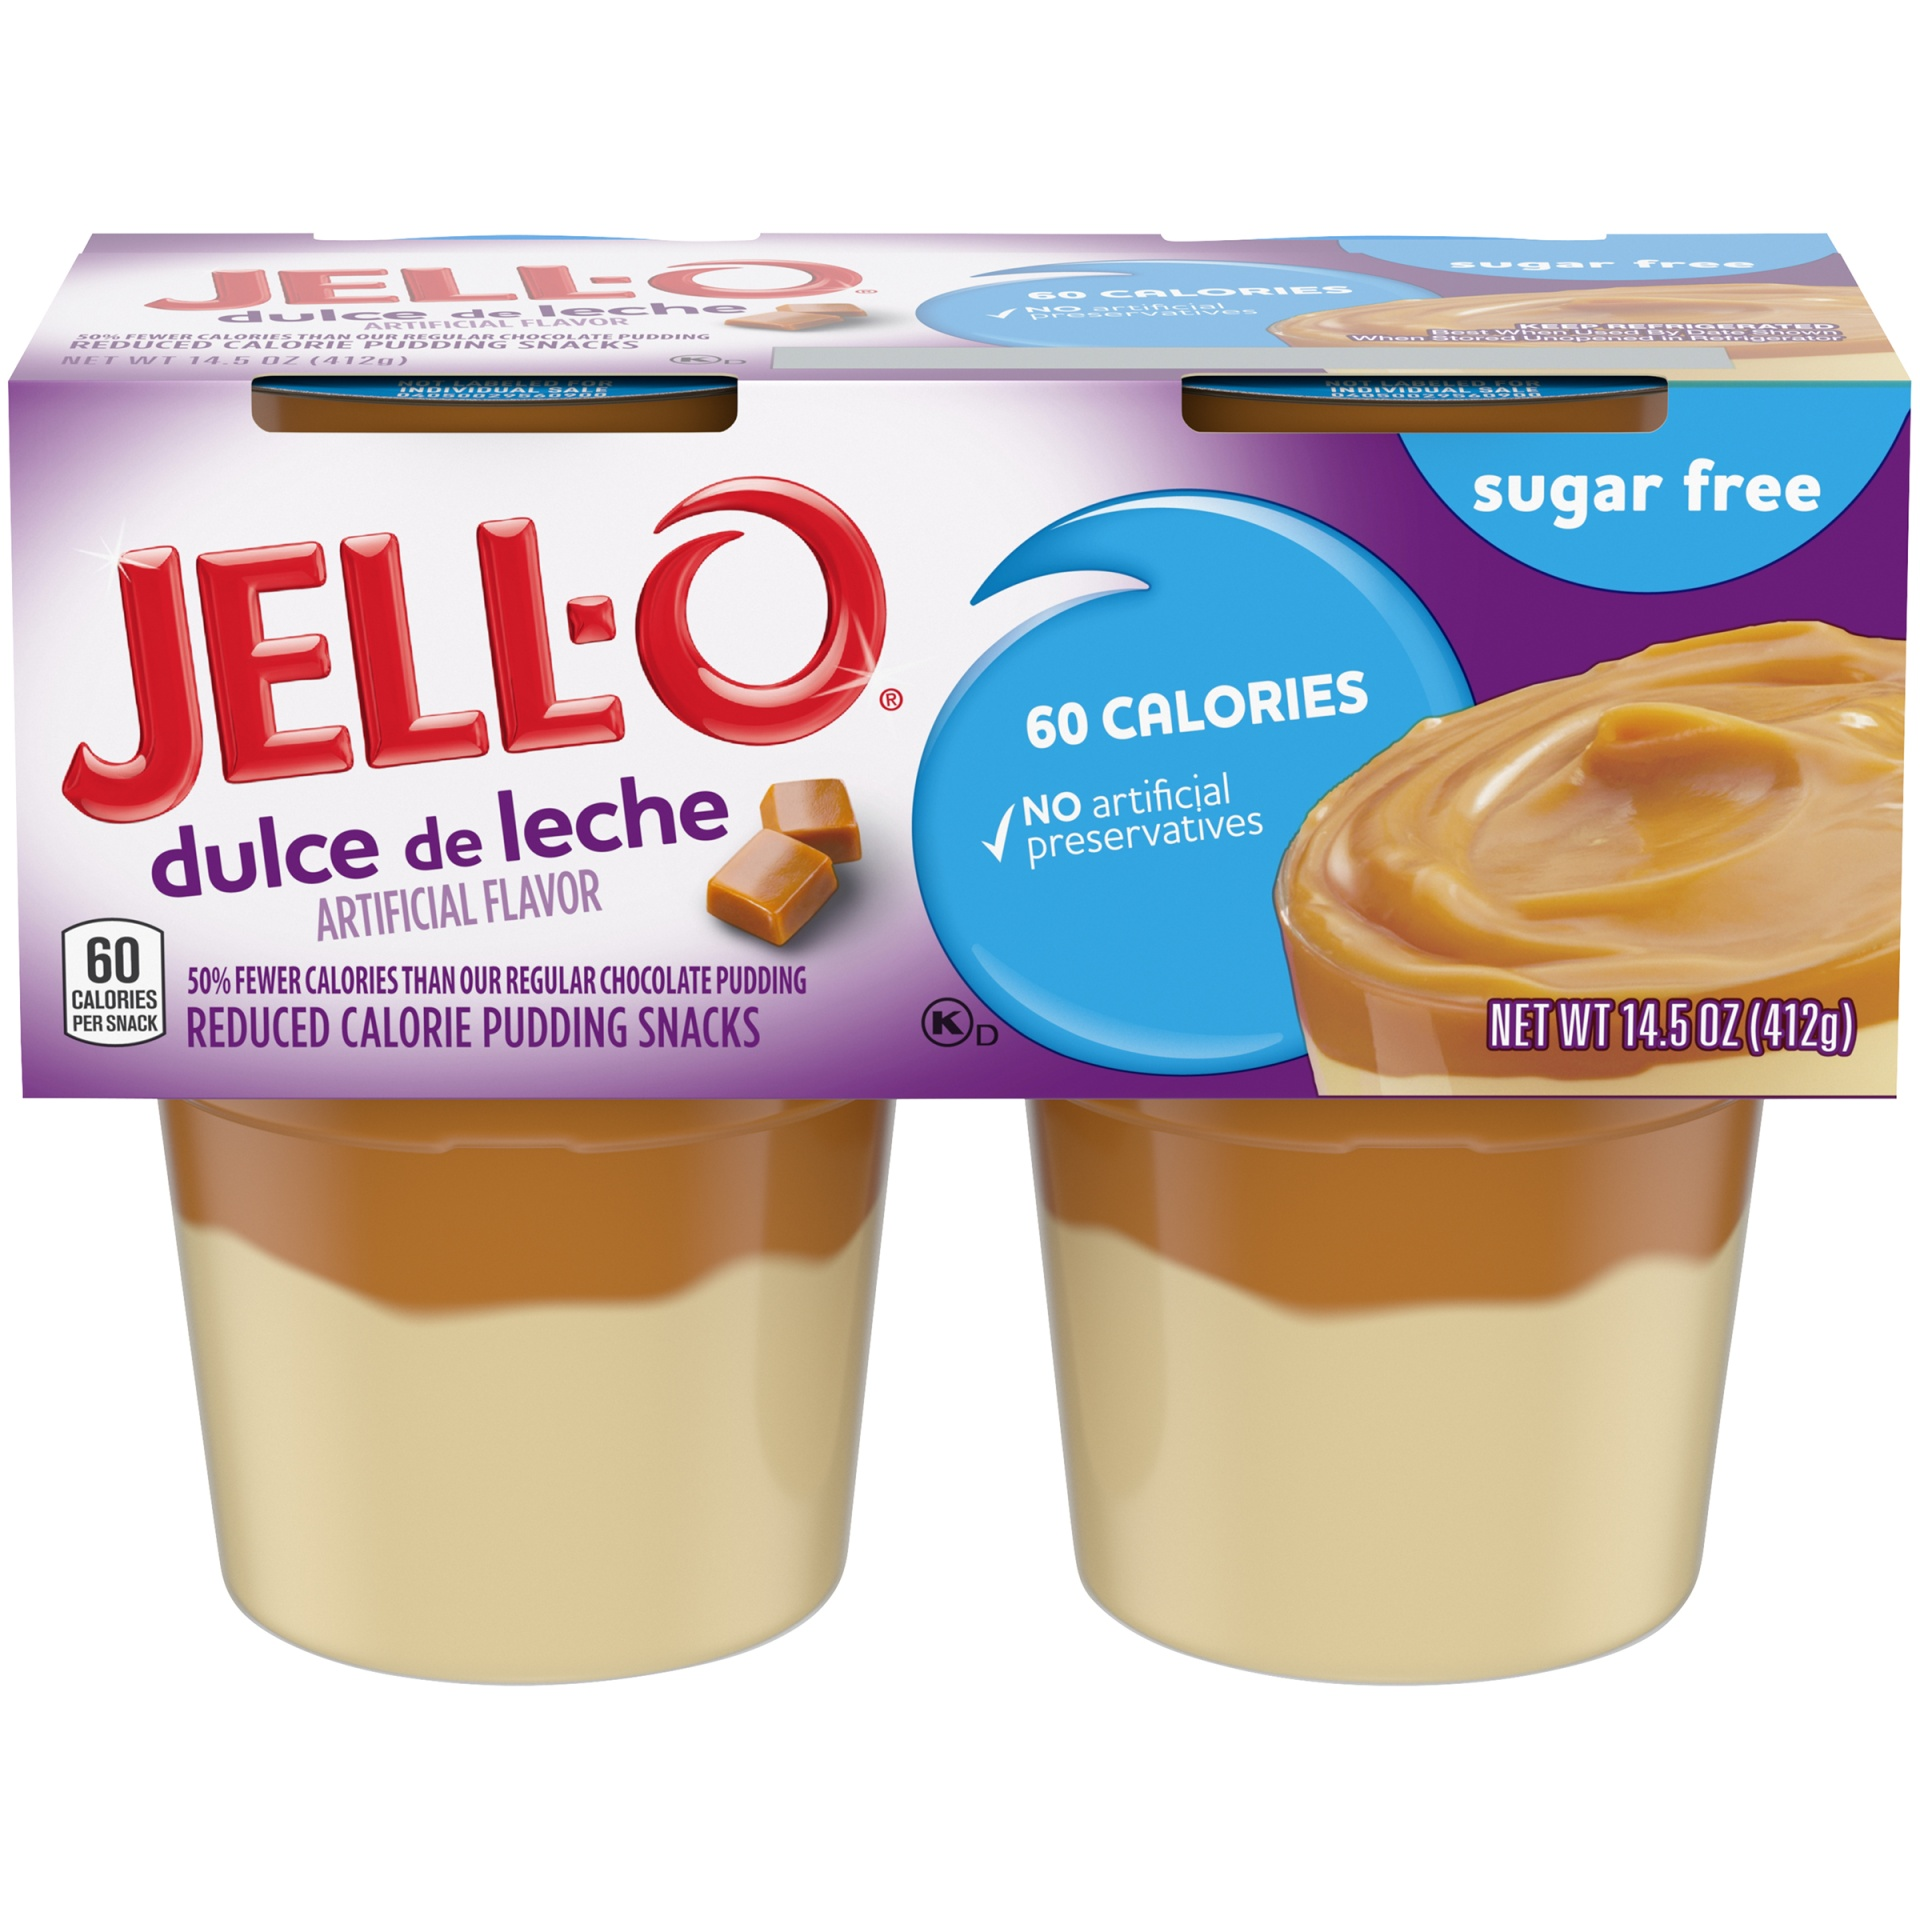 slide 1 of 6, Jell-O Sugar Free Ready to Eat Dulce de Leche Pudding, 4 ct - 14.5 oz Package,